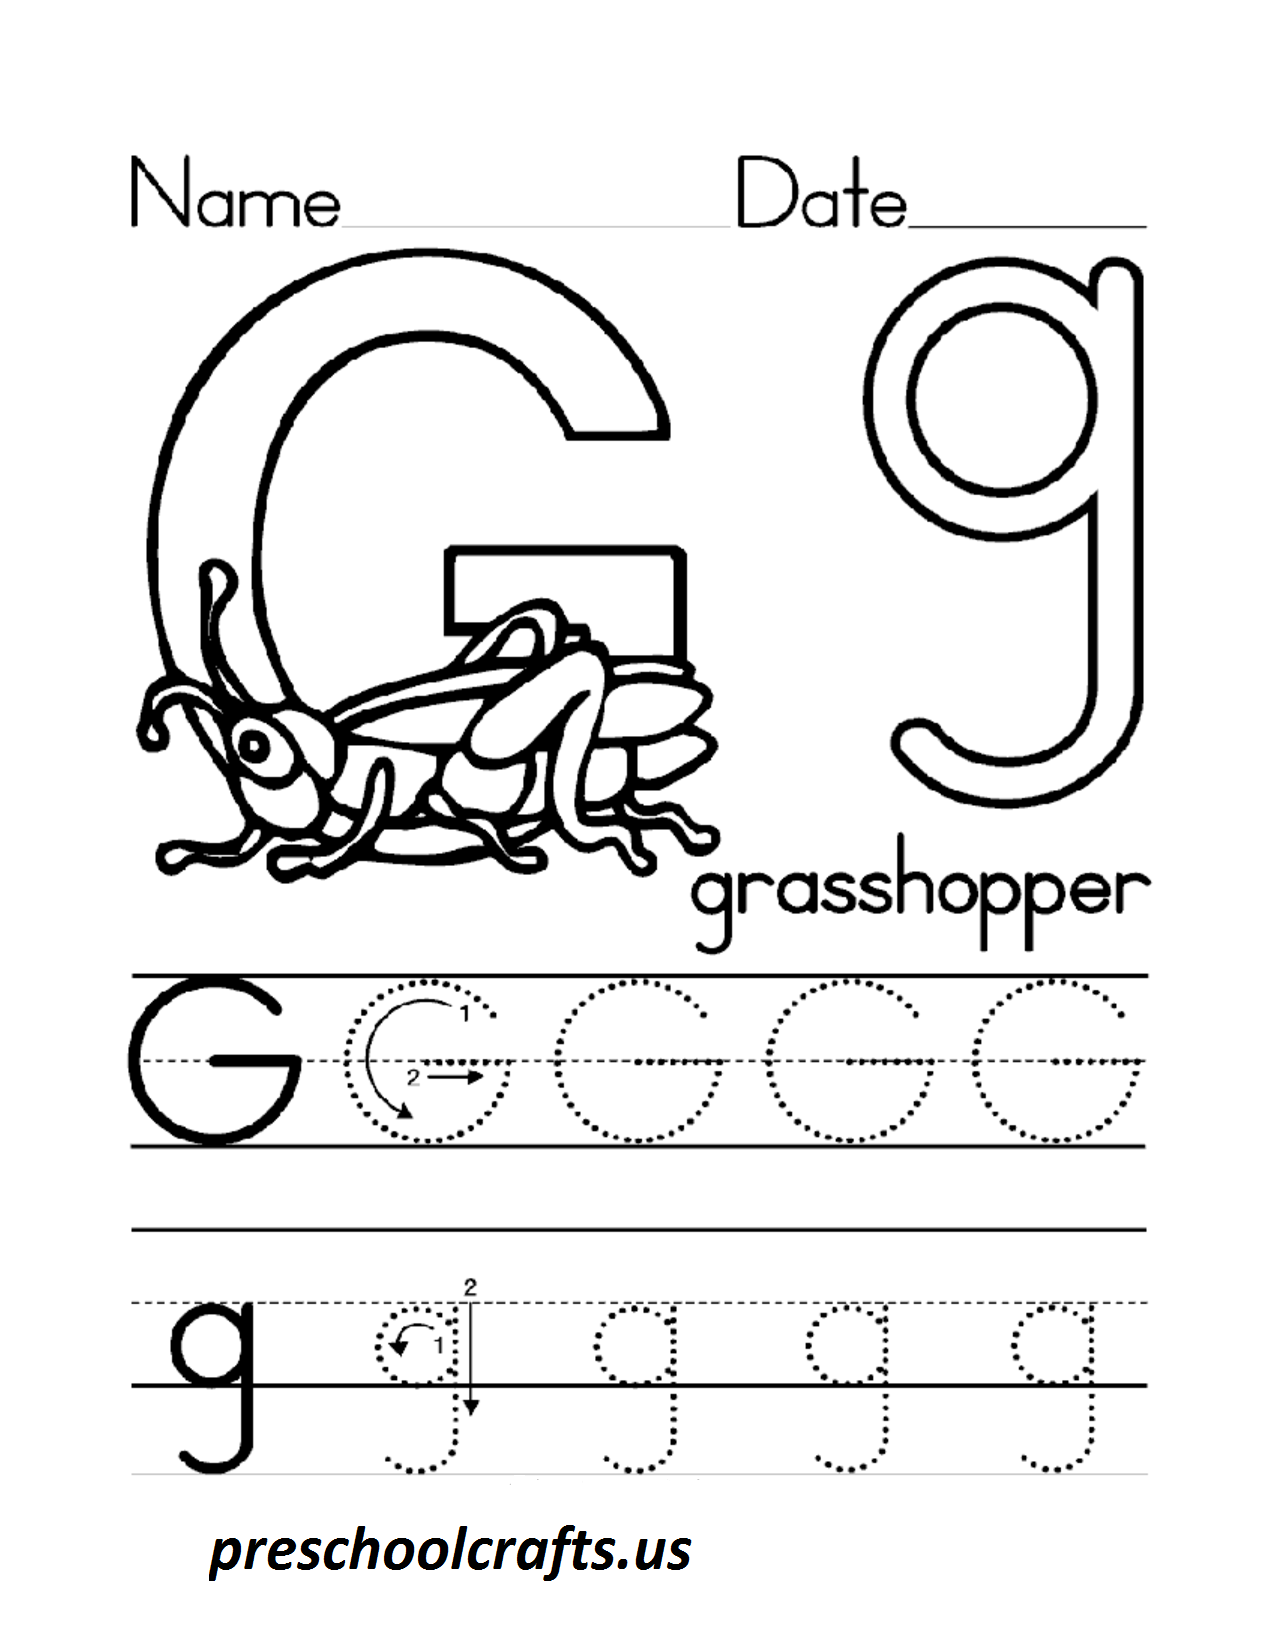 Printables Letter G Worksheets letter g worksheets for preschool crafts preschool